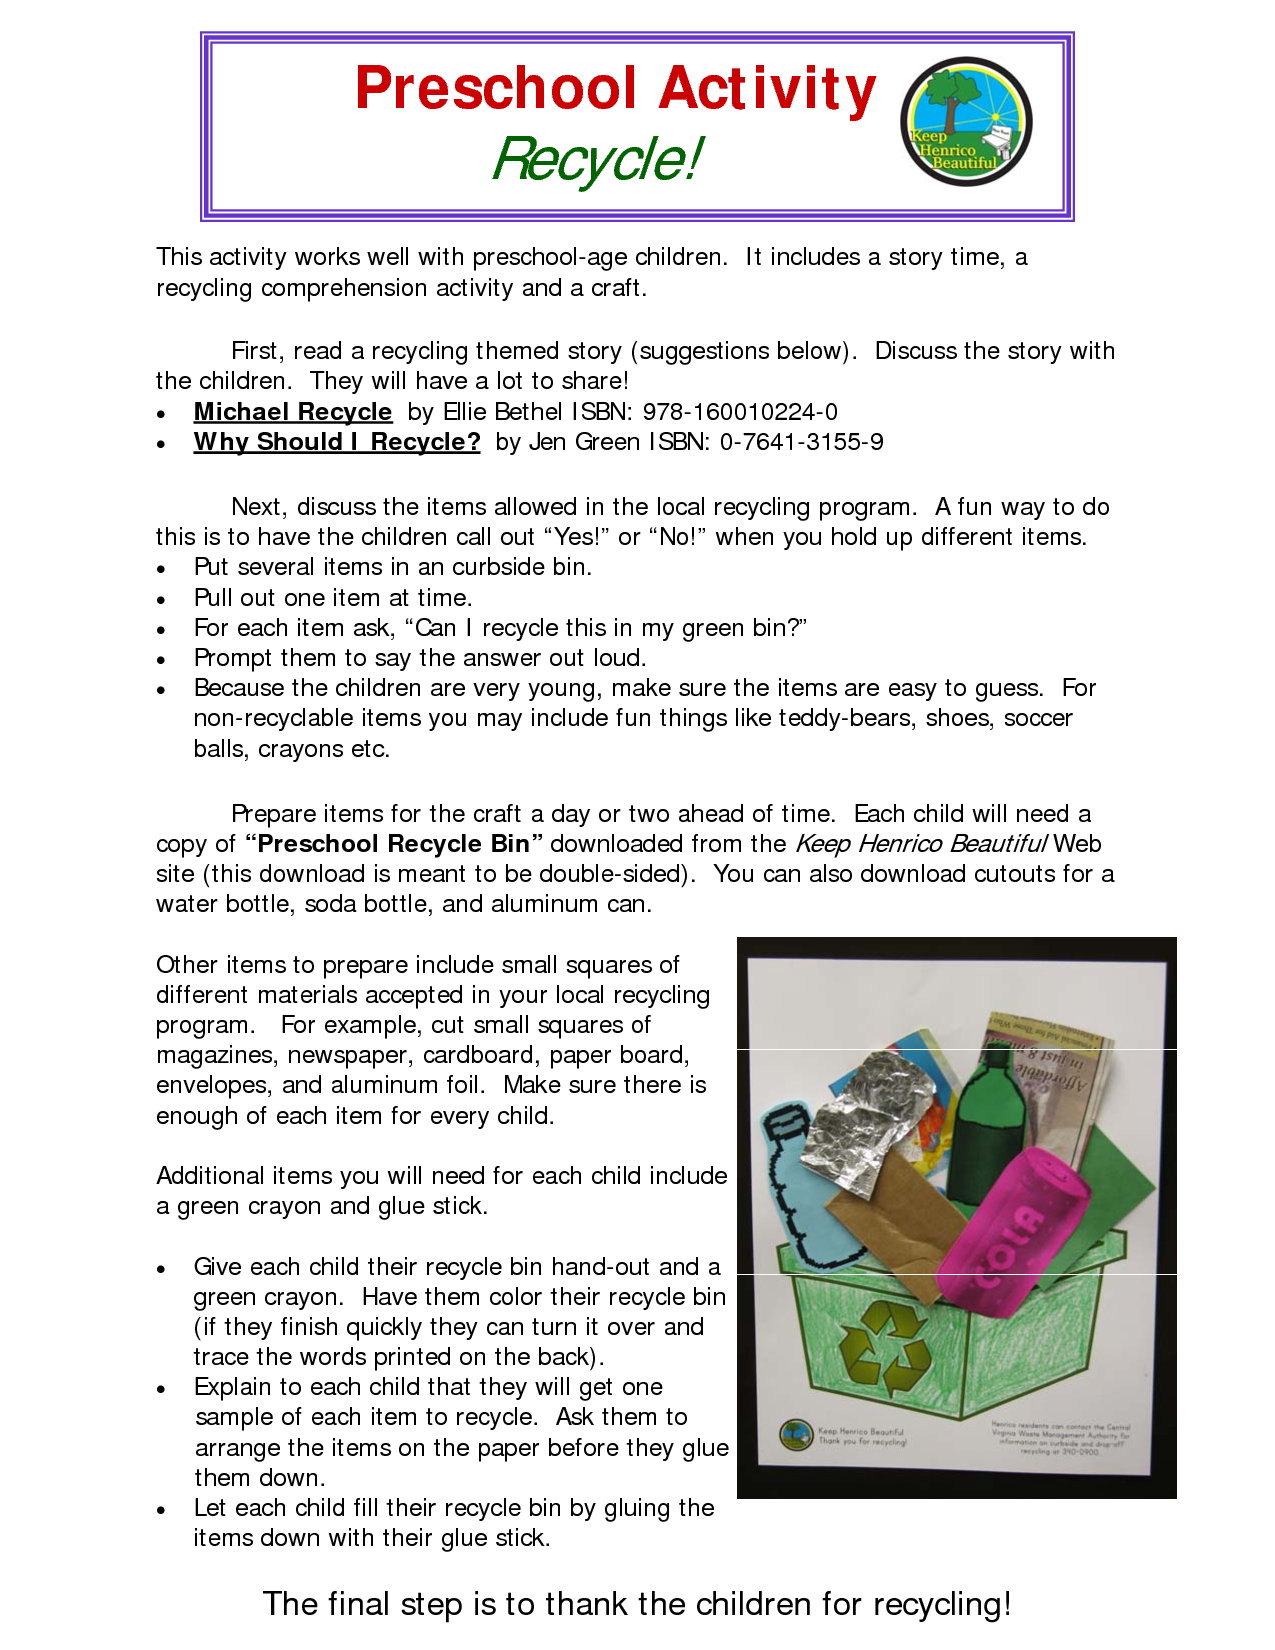 Recycling Preschool Activity Lesson Plans